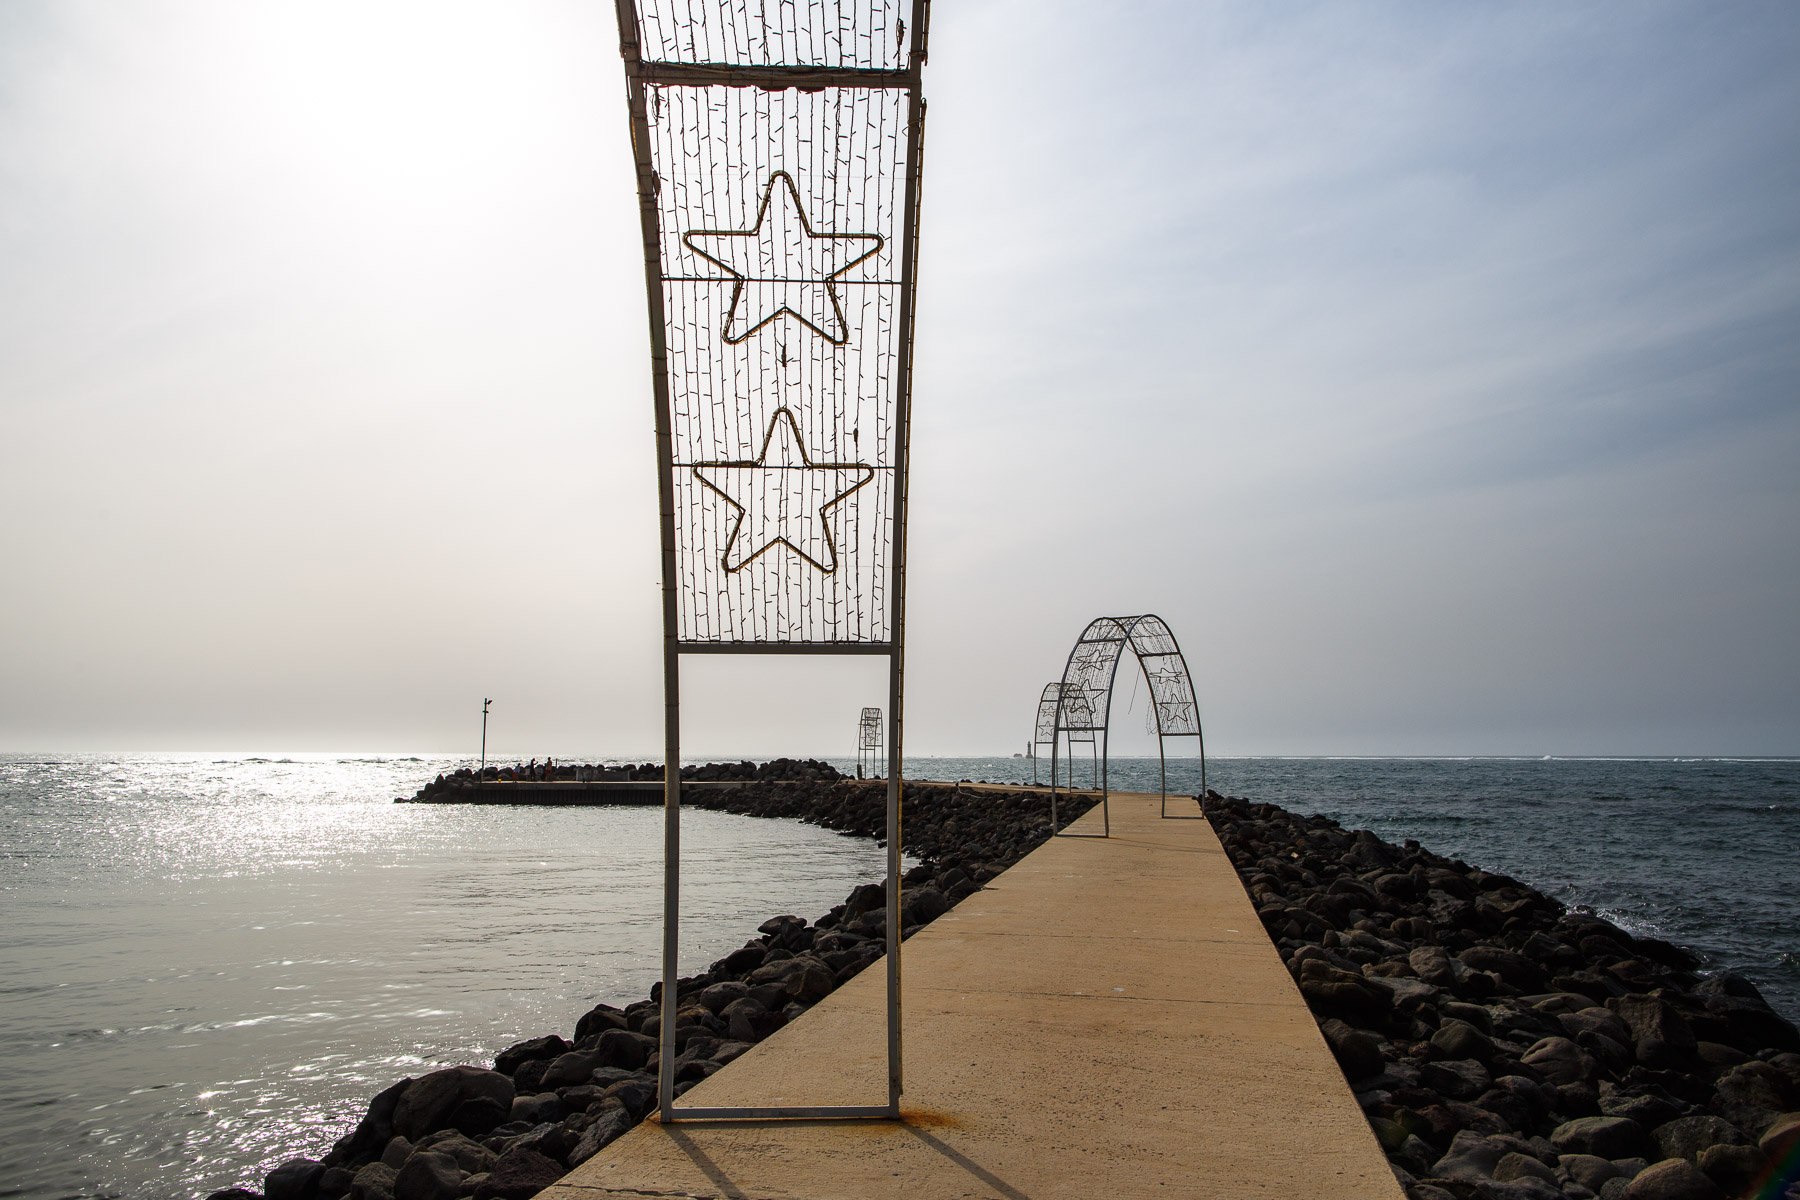 Pointe des Almadies, most Western point in West Africa, Dakar